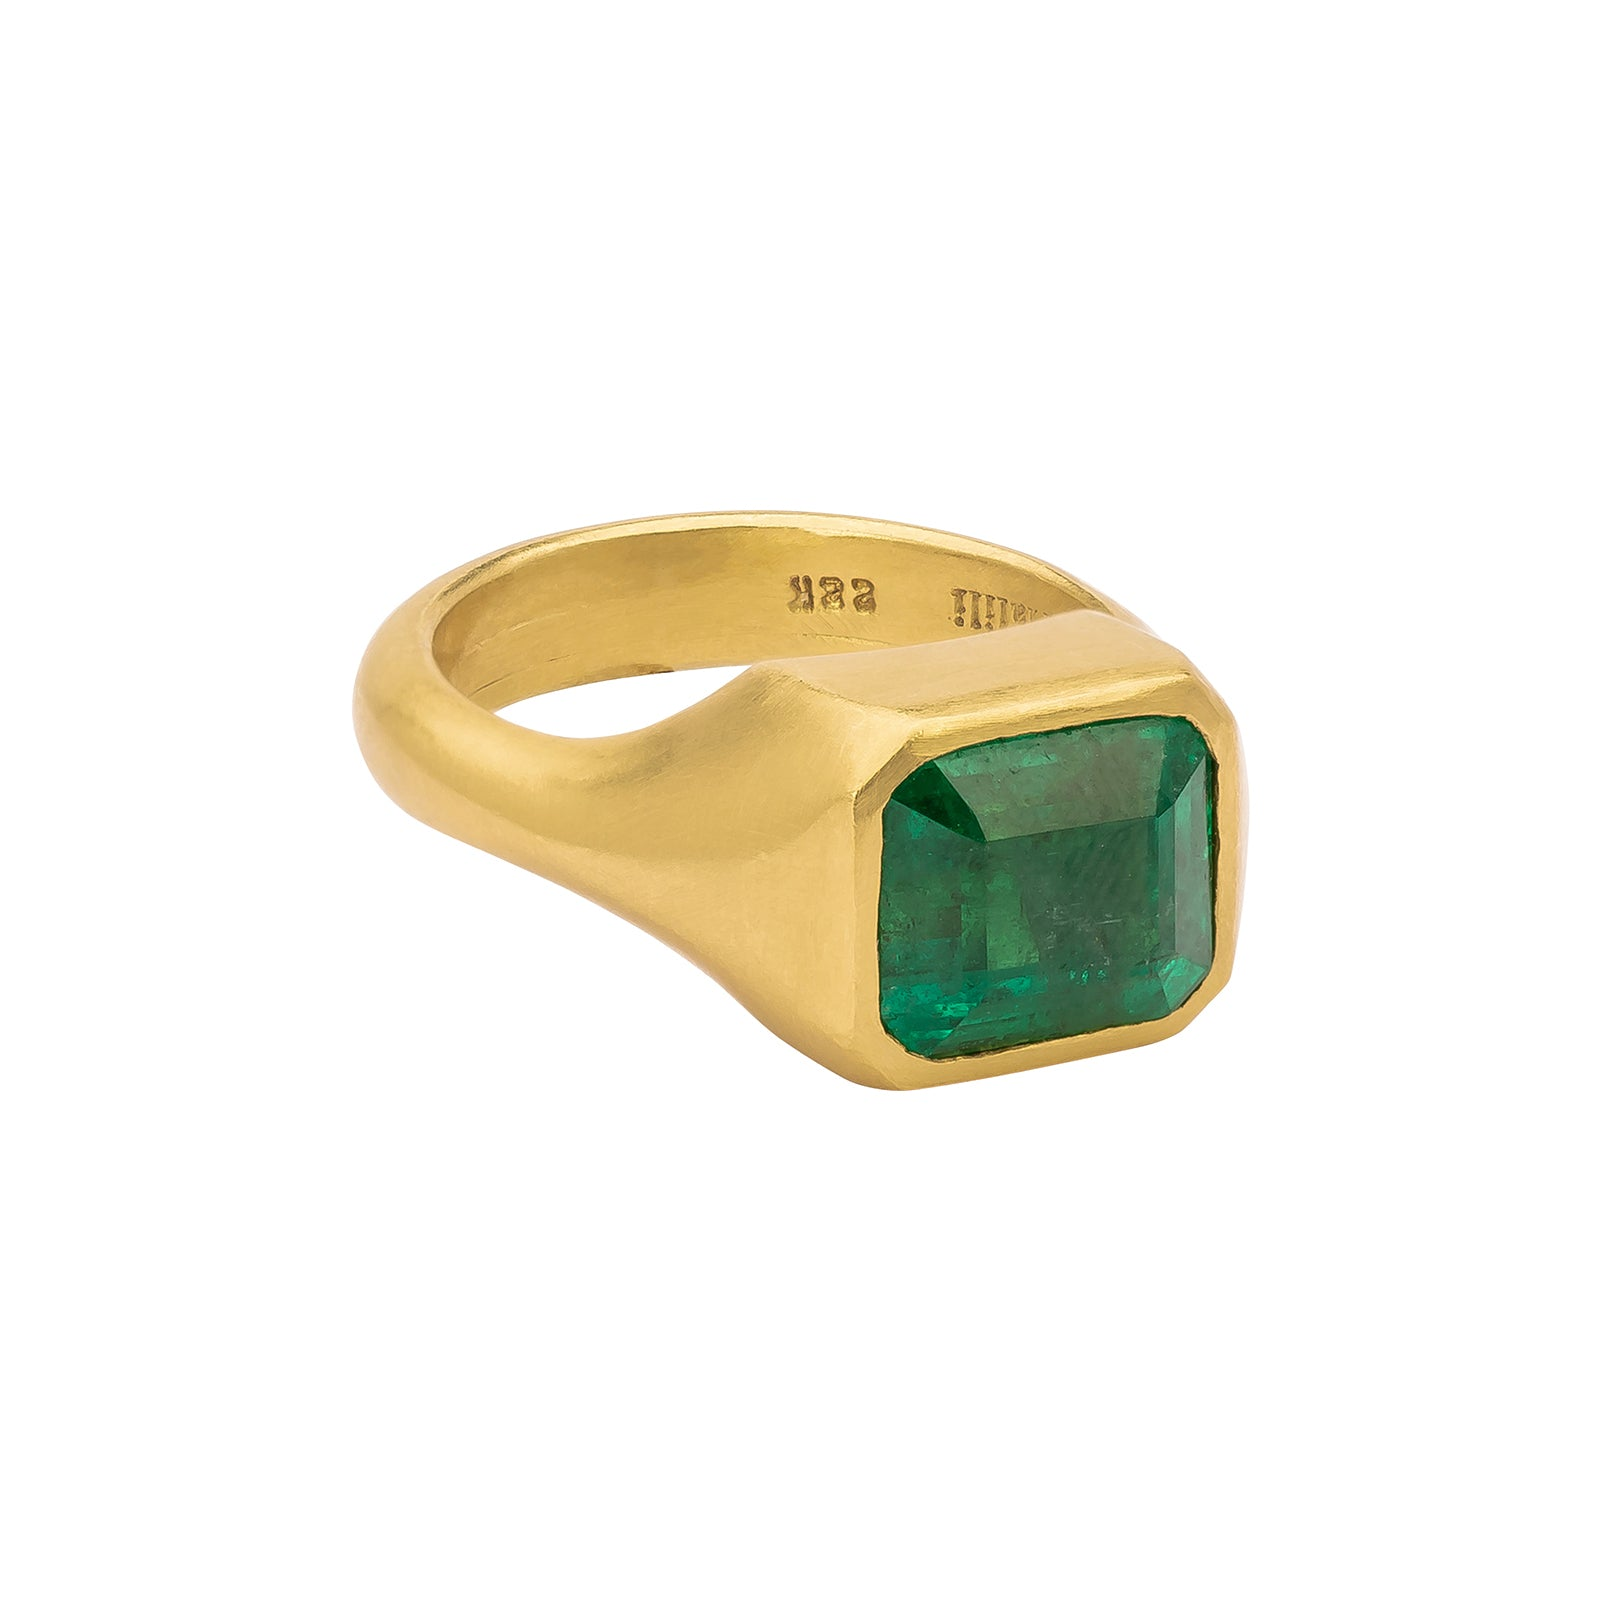 Eli Halili Emerald Cut Emerald Ring - Rings - Broken English Jewelry